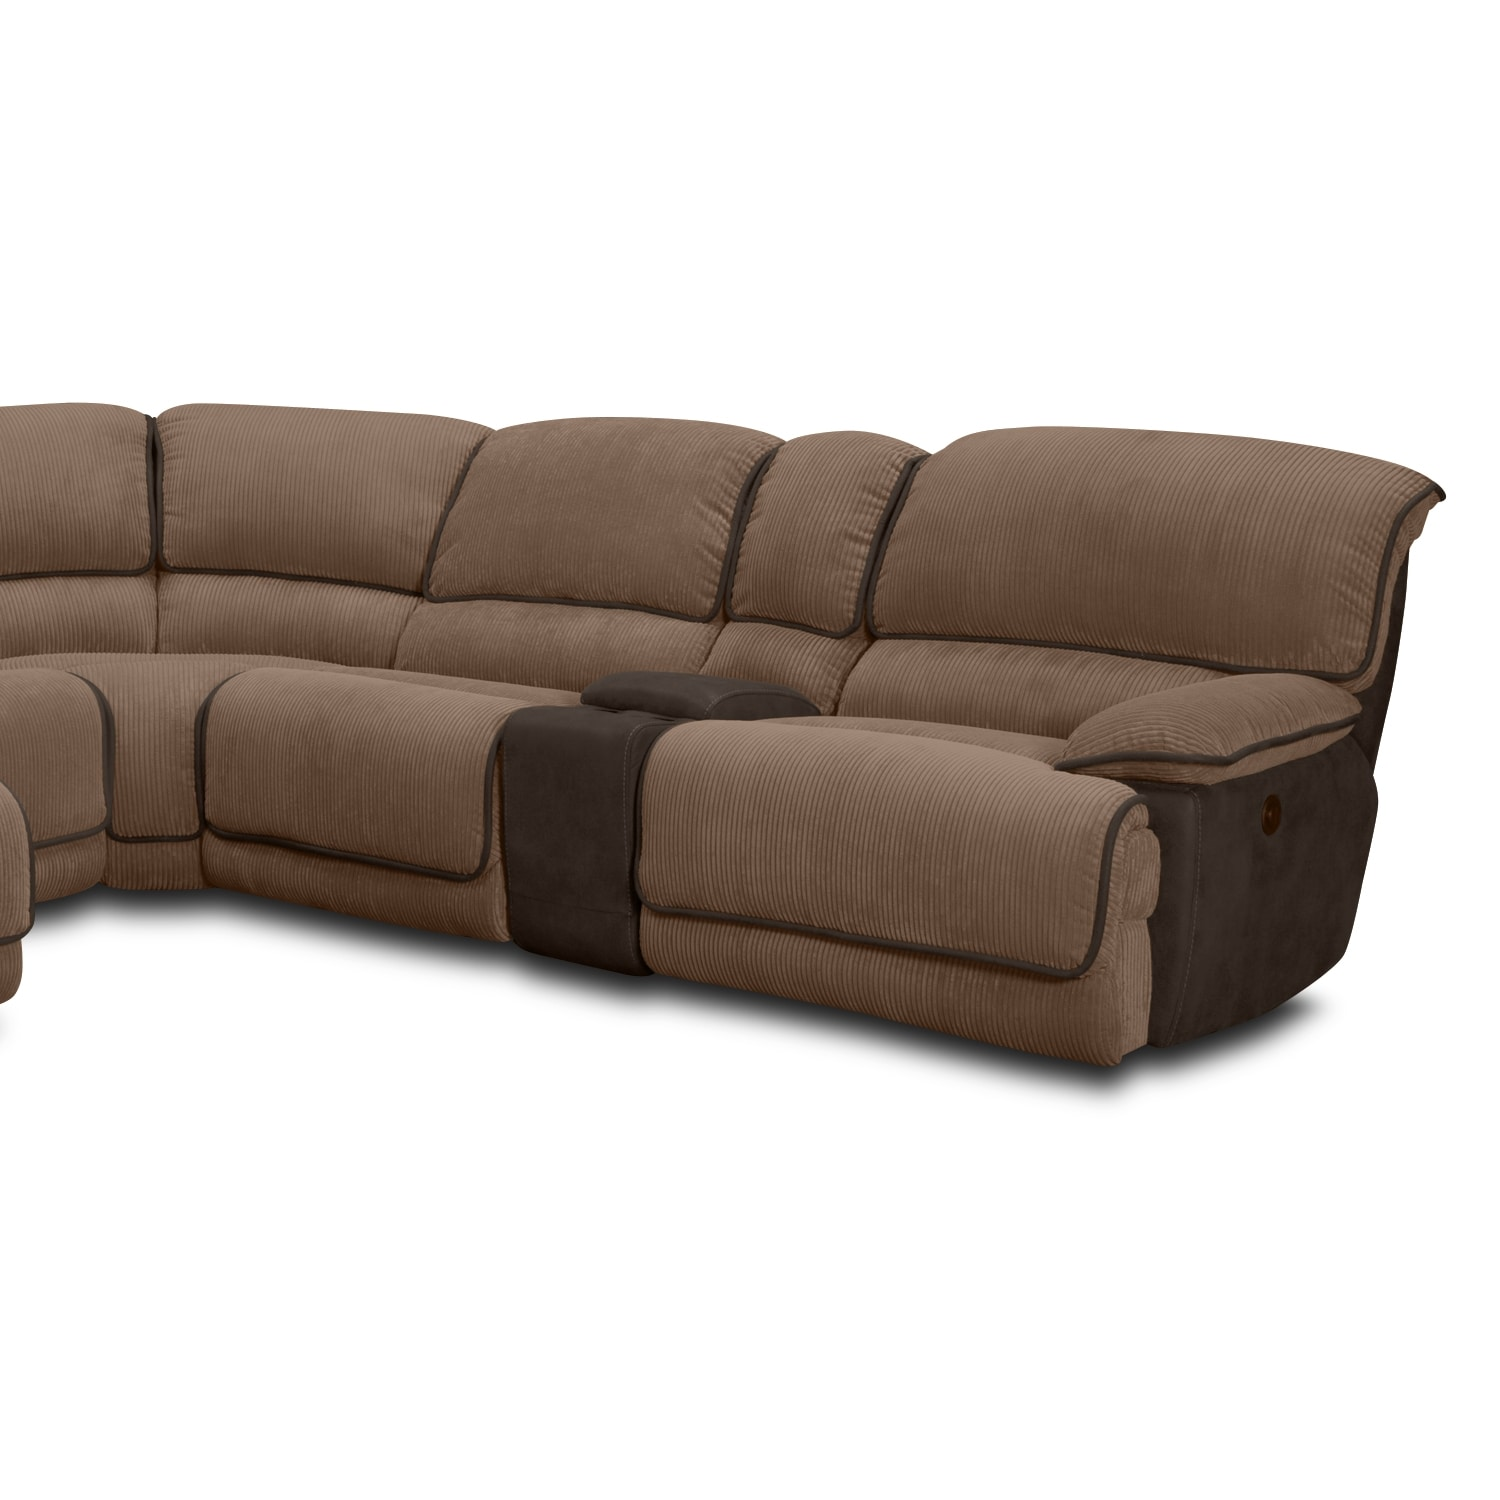 Midori 6 Pc Leather Power Reclining Sectional Sofa: Del Mar Ii Upholstery 6 Pc Power Reclining Sectional